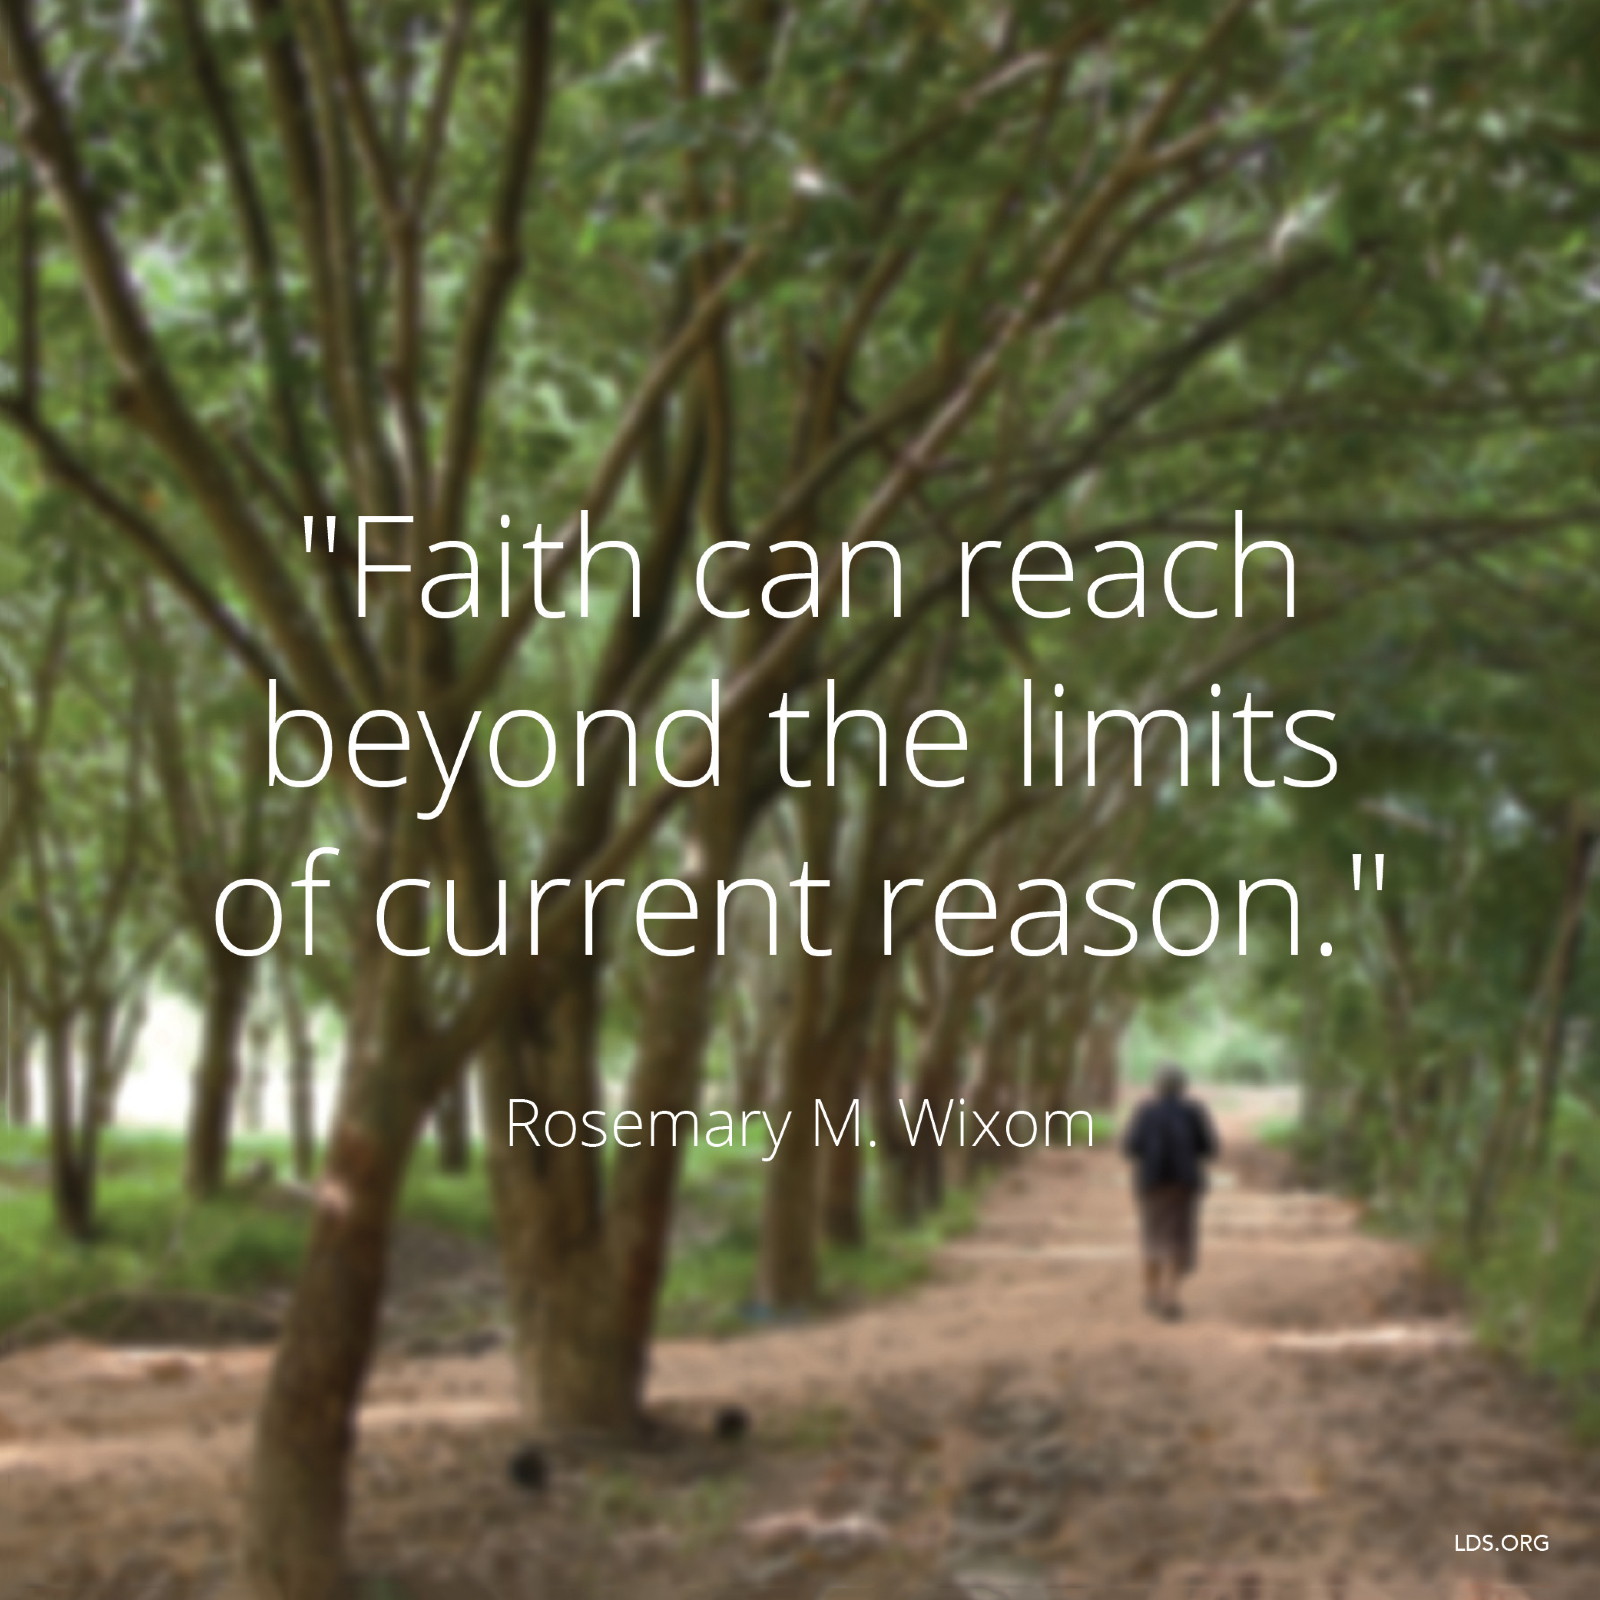 Nature Images With Quotes Download: Beyond The Limits